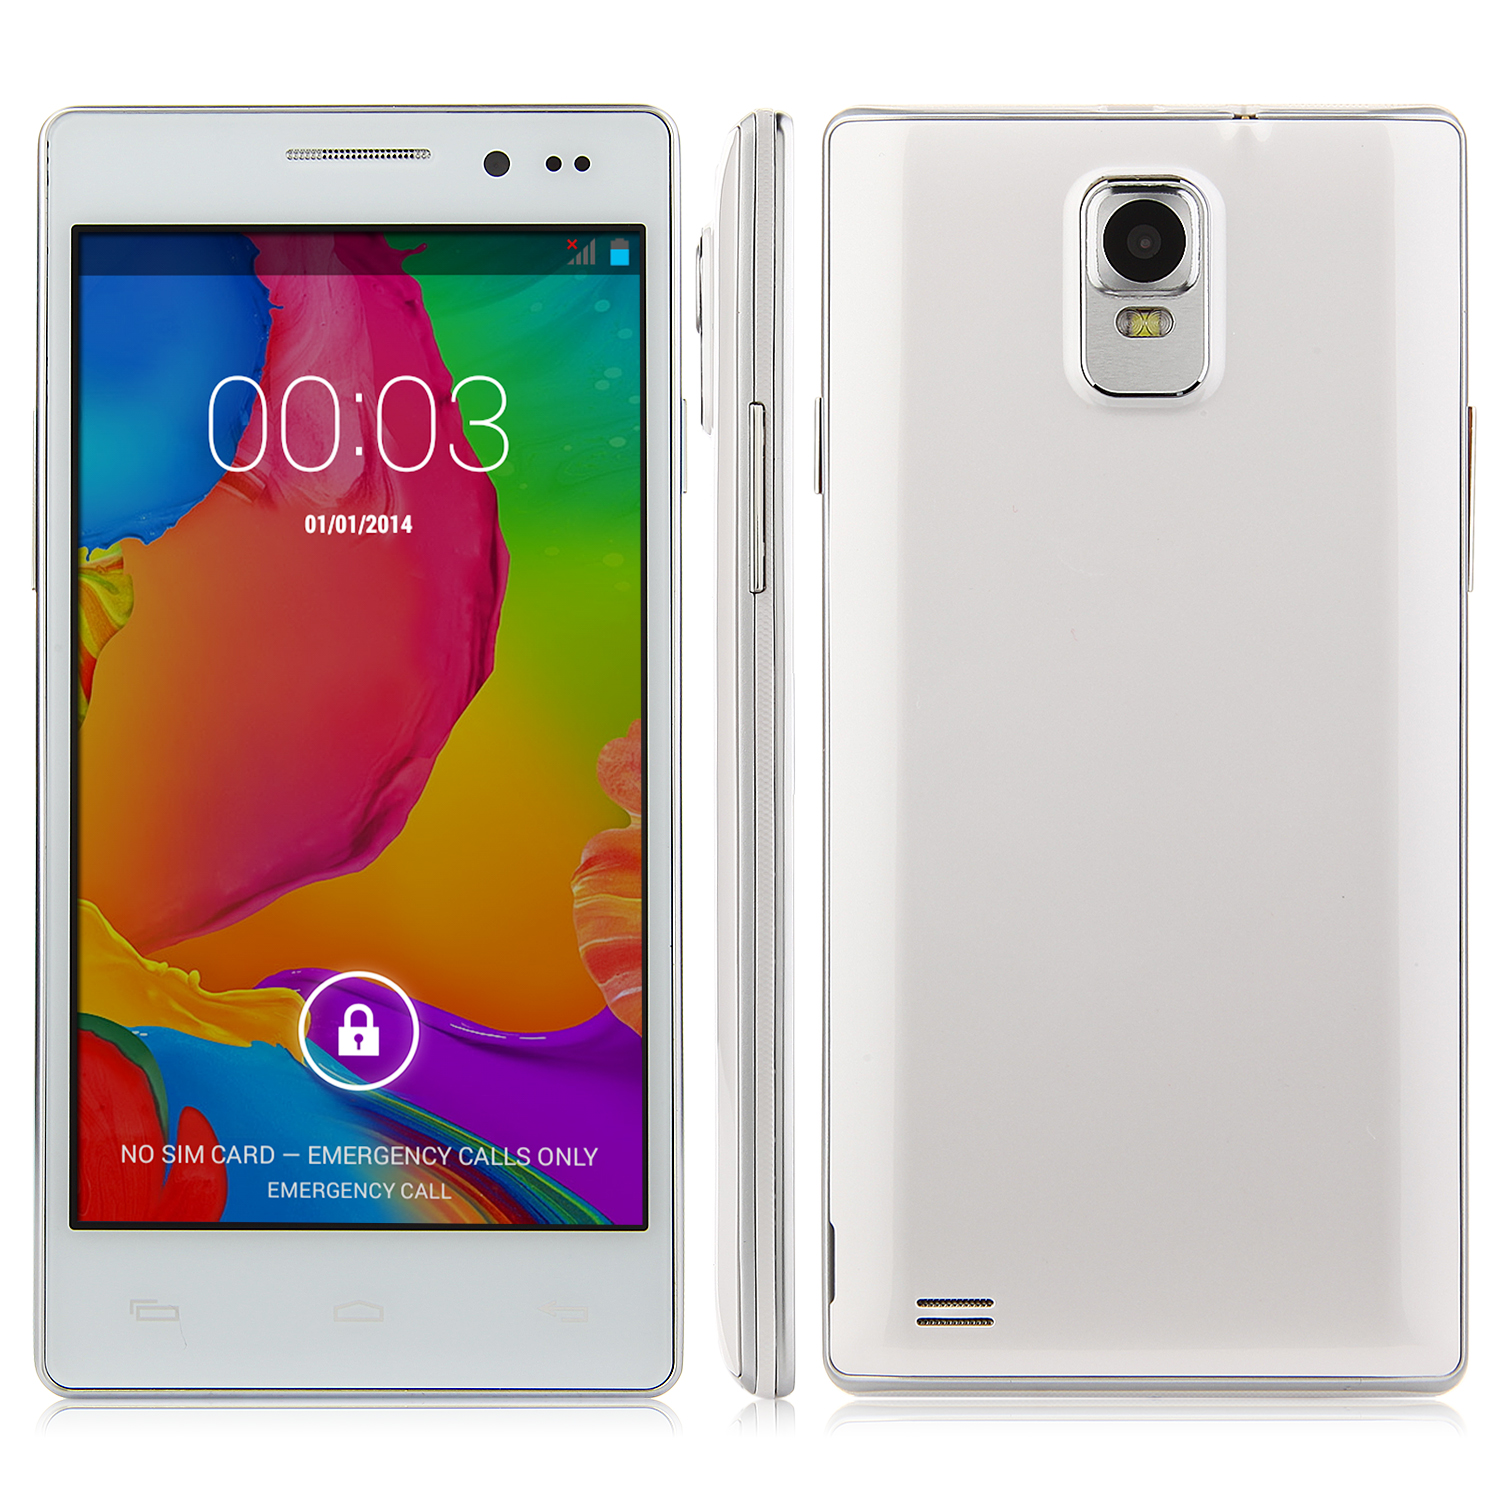 N908 Smartphone Android 4.4 MTK6572 Dual Core 5.0 Inch Screen Smart Wake White